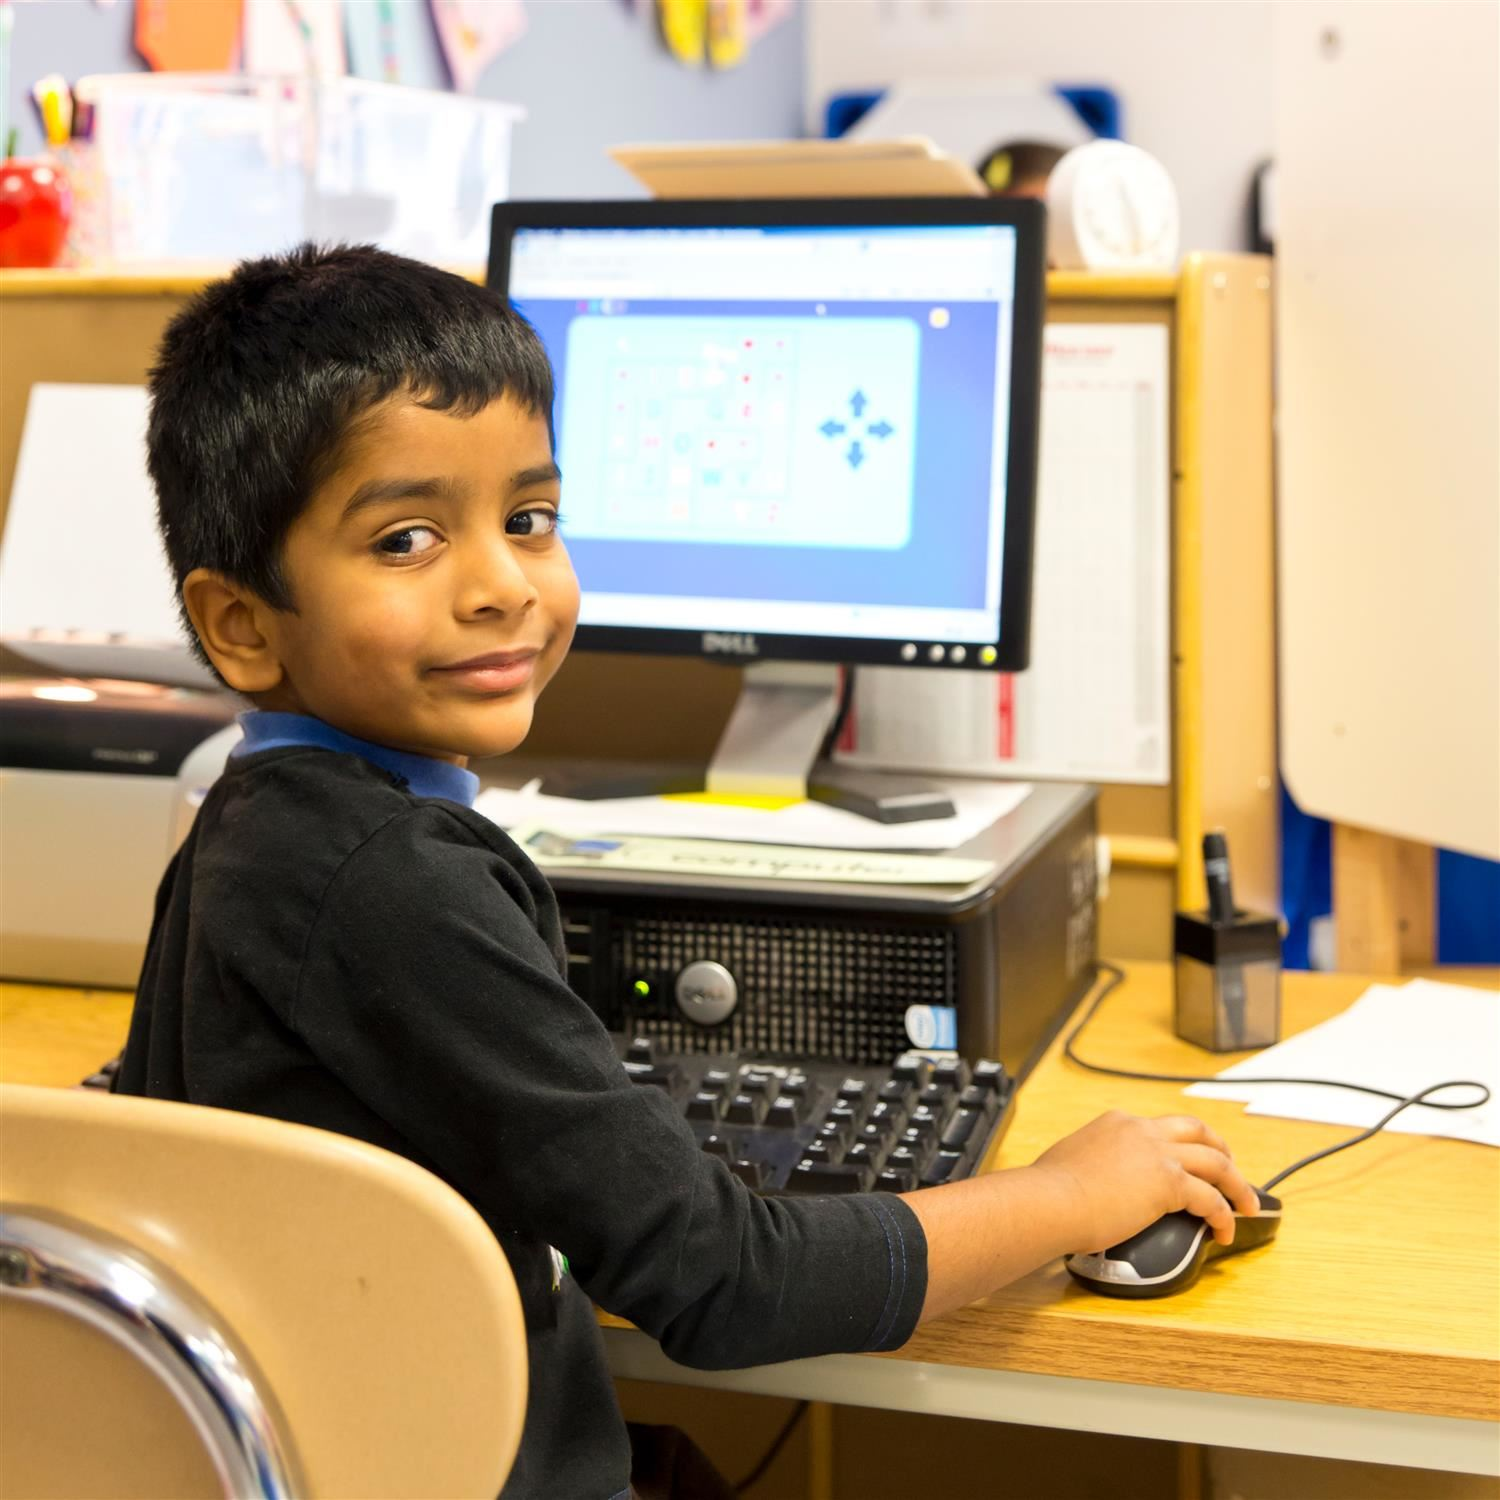 Pre-kindergarten student working on computer